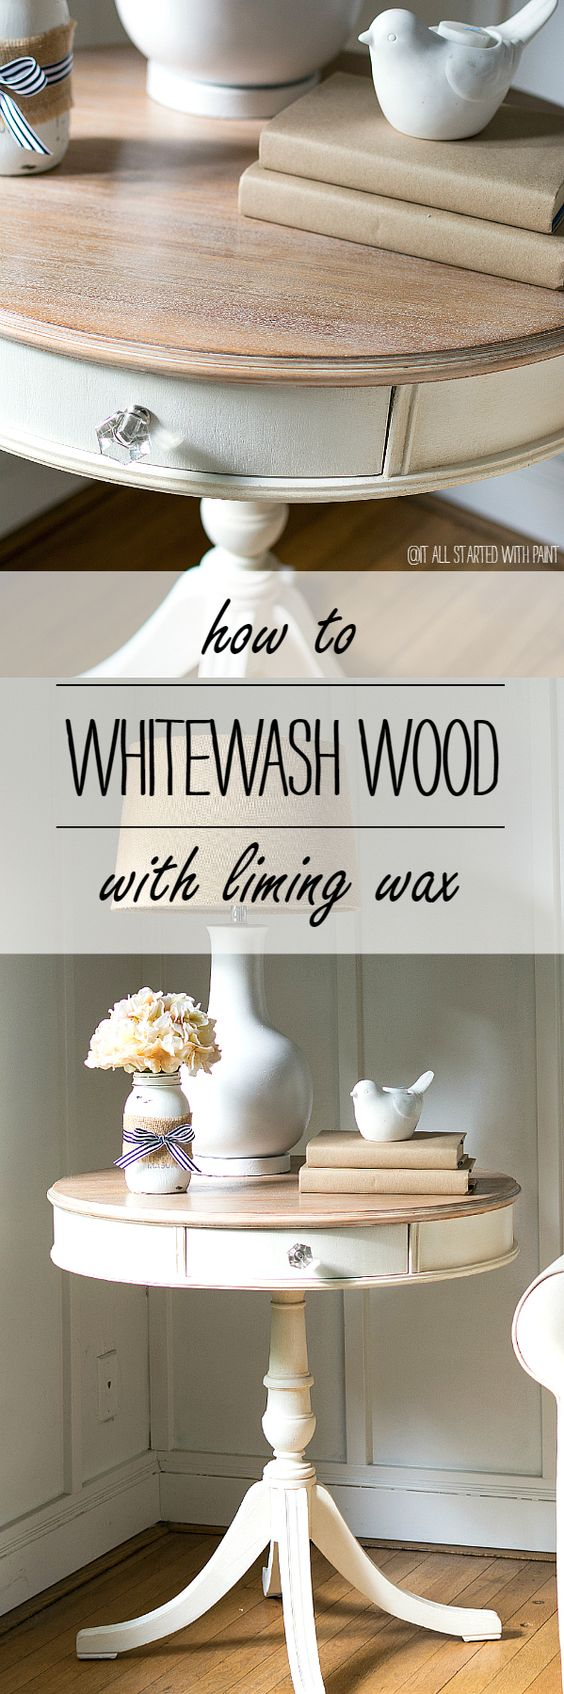 How to use liming wax to give your wood a whitewash finish - full tutorial on prep and application of liming wax: